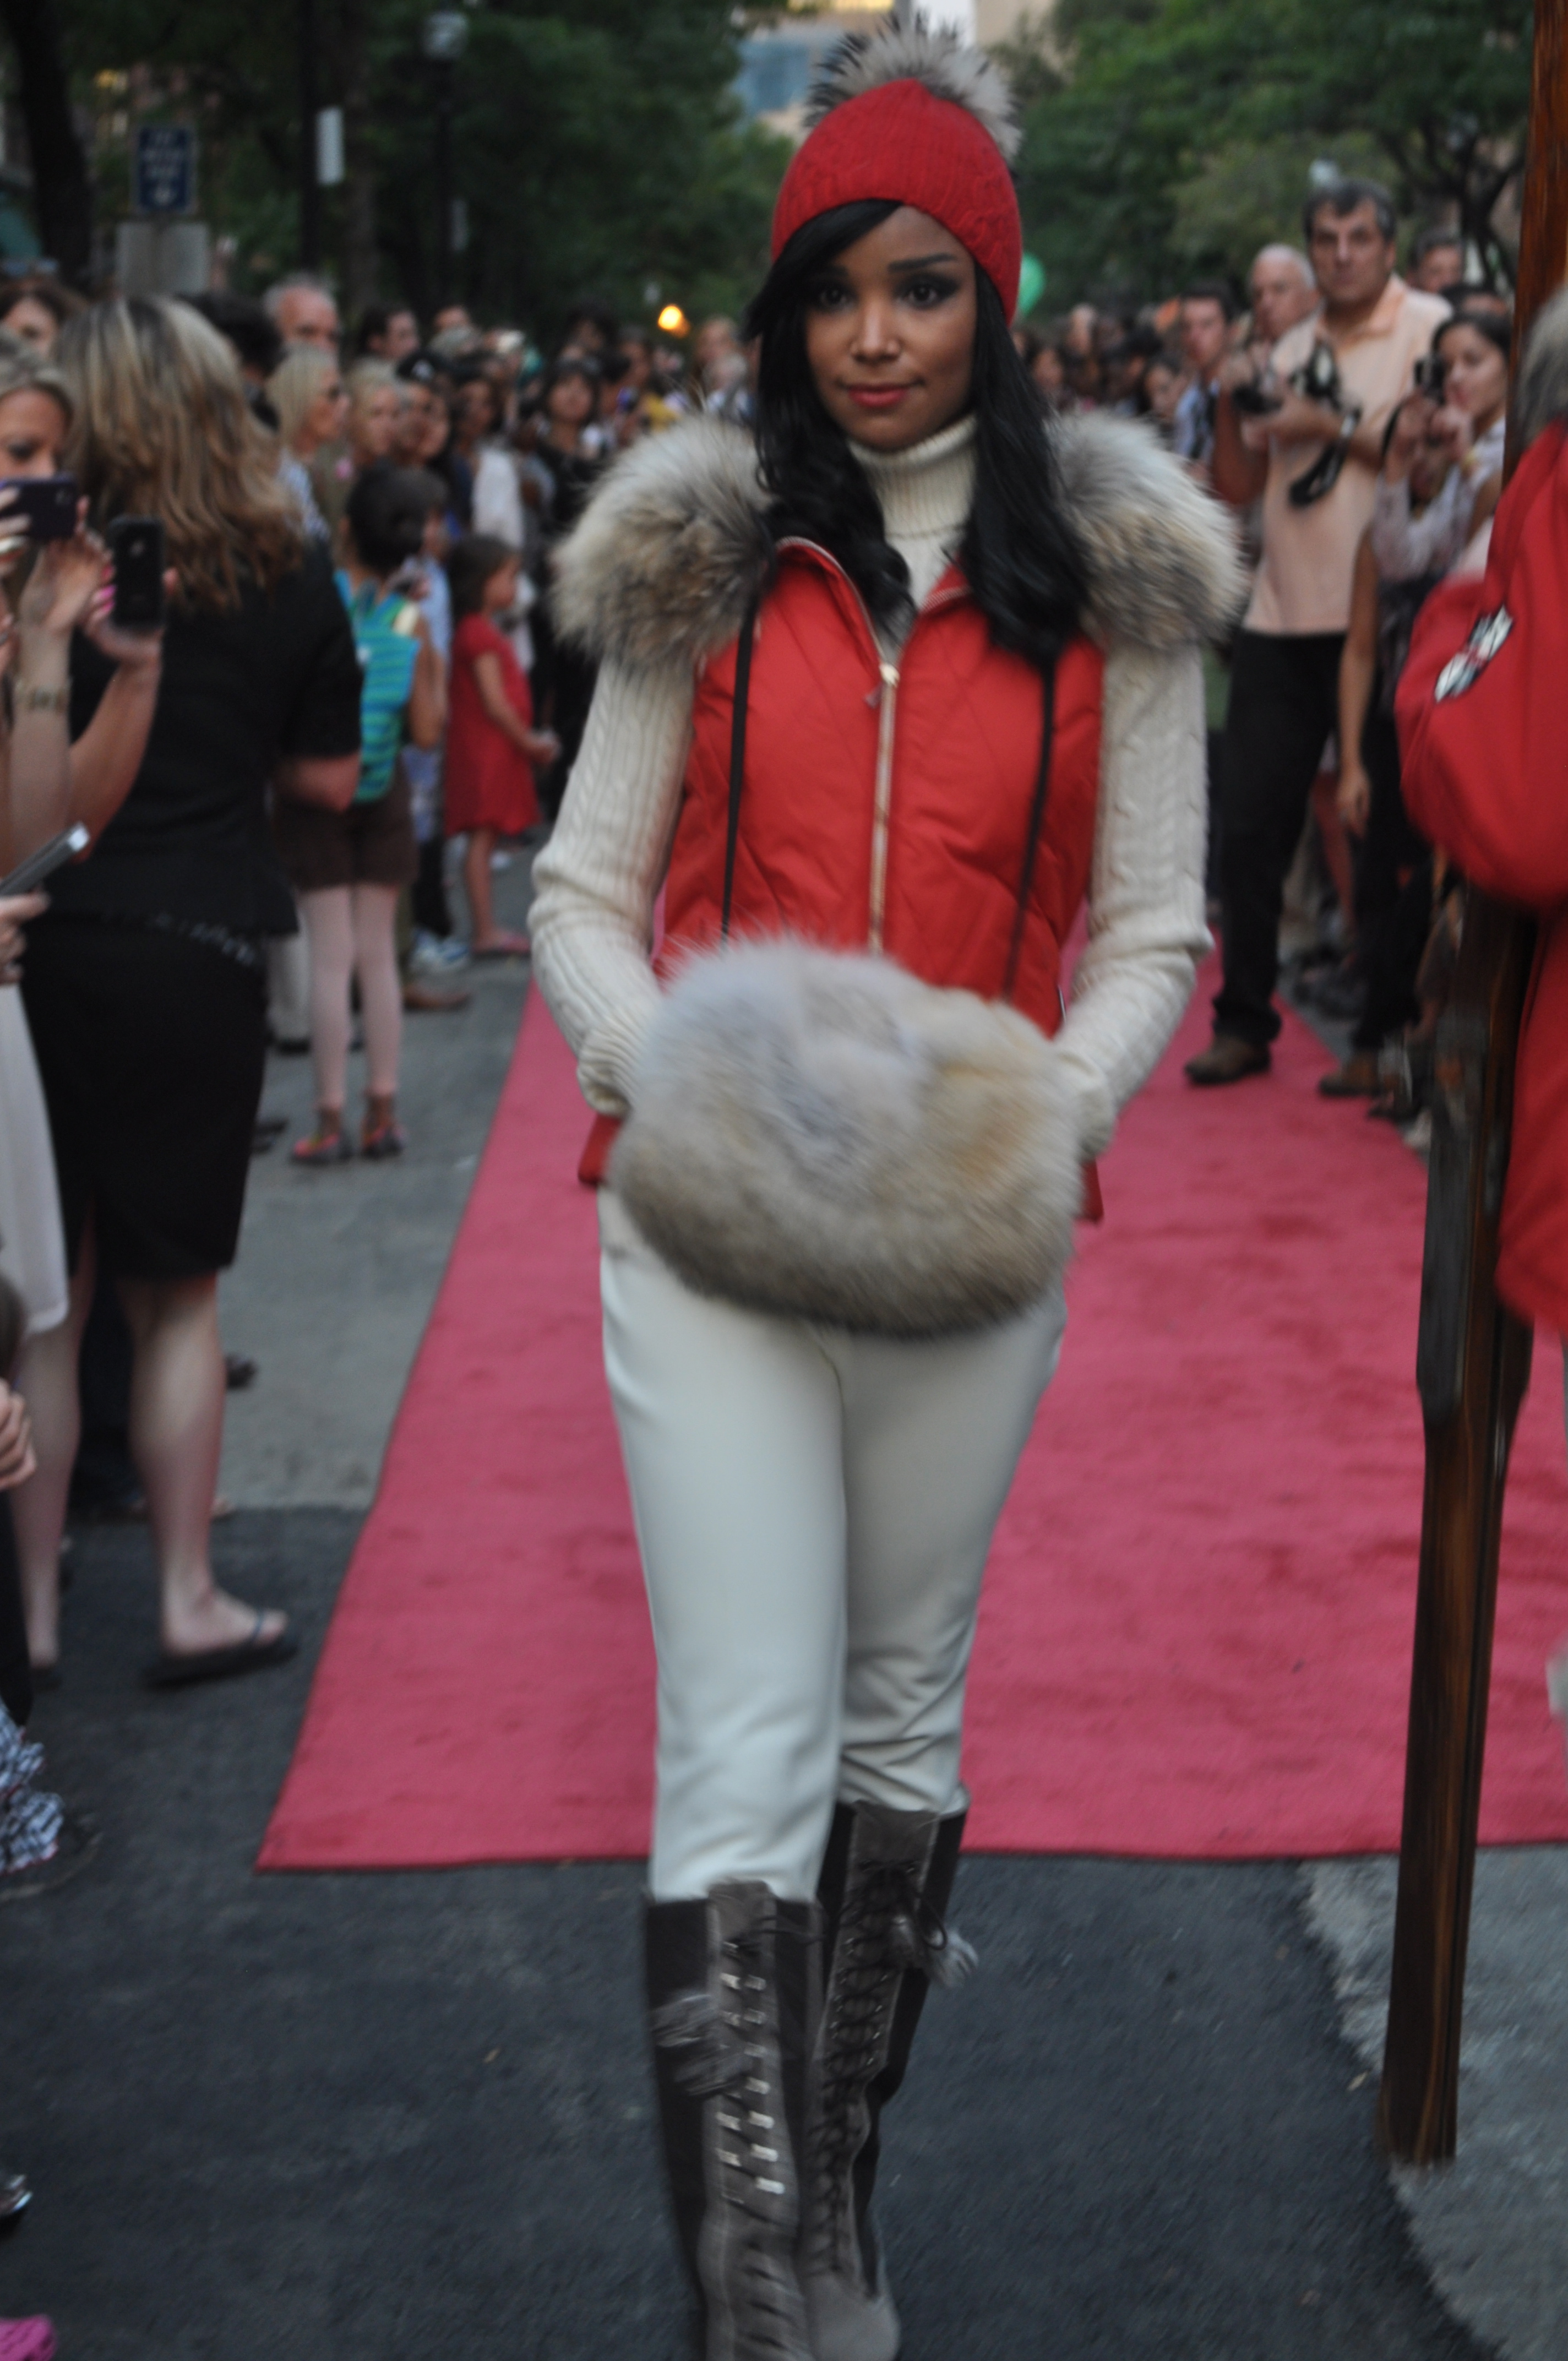 A model displays a look by M. Miller at Newbury Street's fashion show. | Photo by Izzi Fathy.